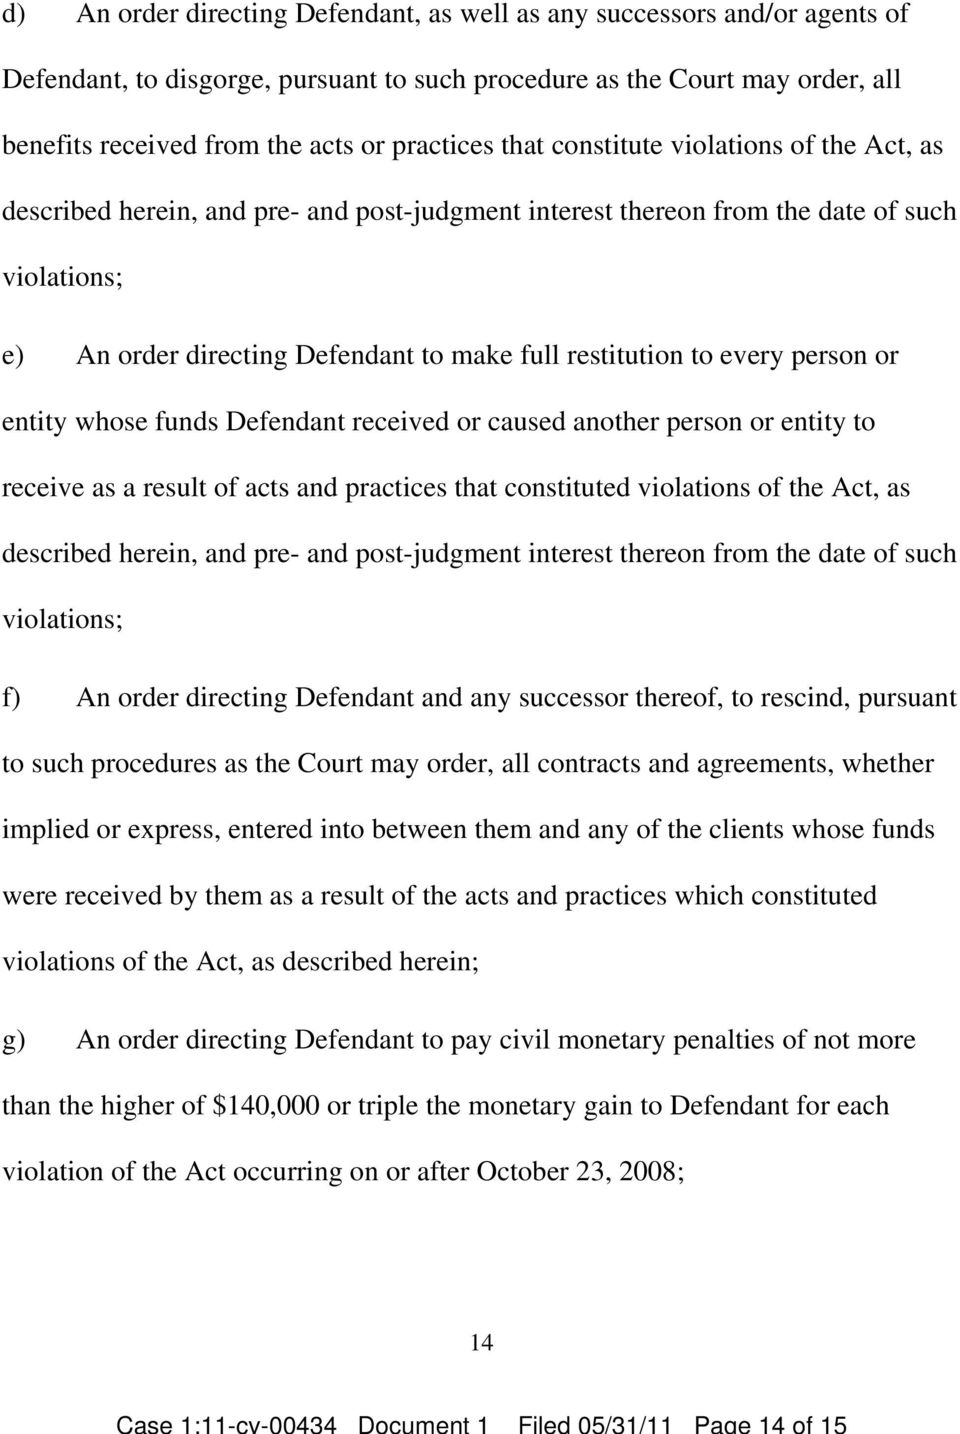 An order directing Defendant to make full restitution to every person or entity whose funds Defendant received or caused another person or entity to receive as a result of acts and practices that